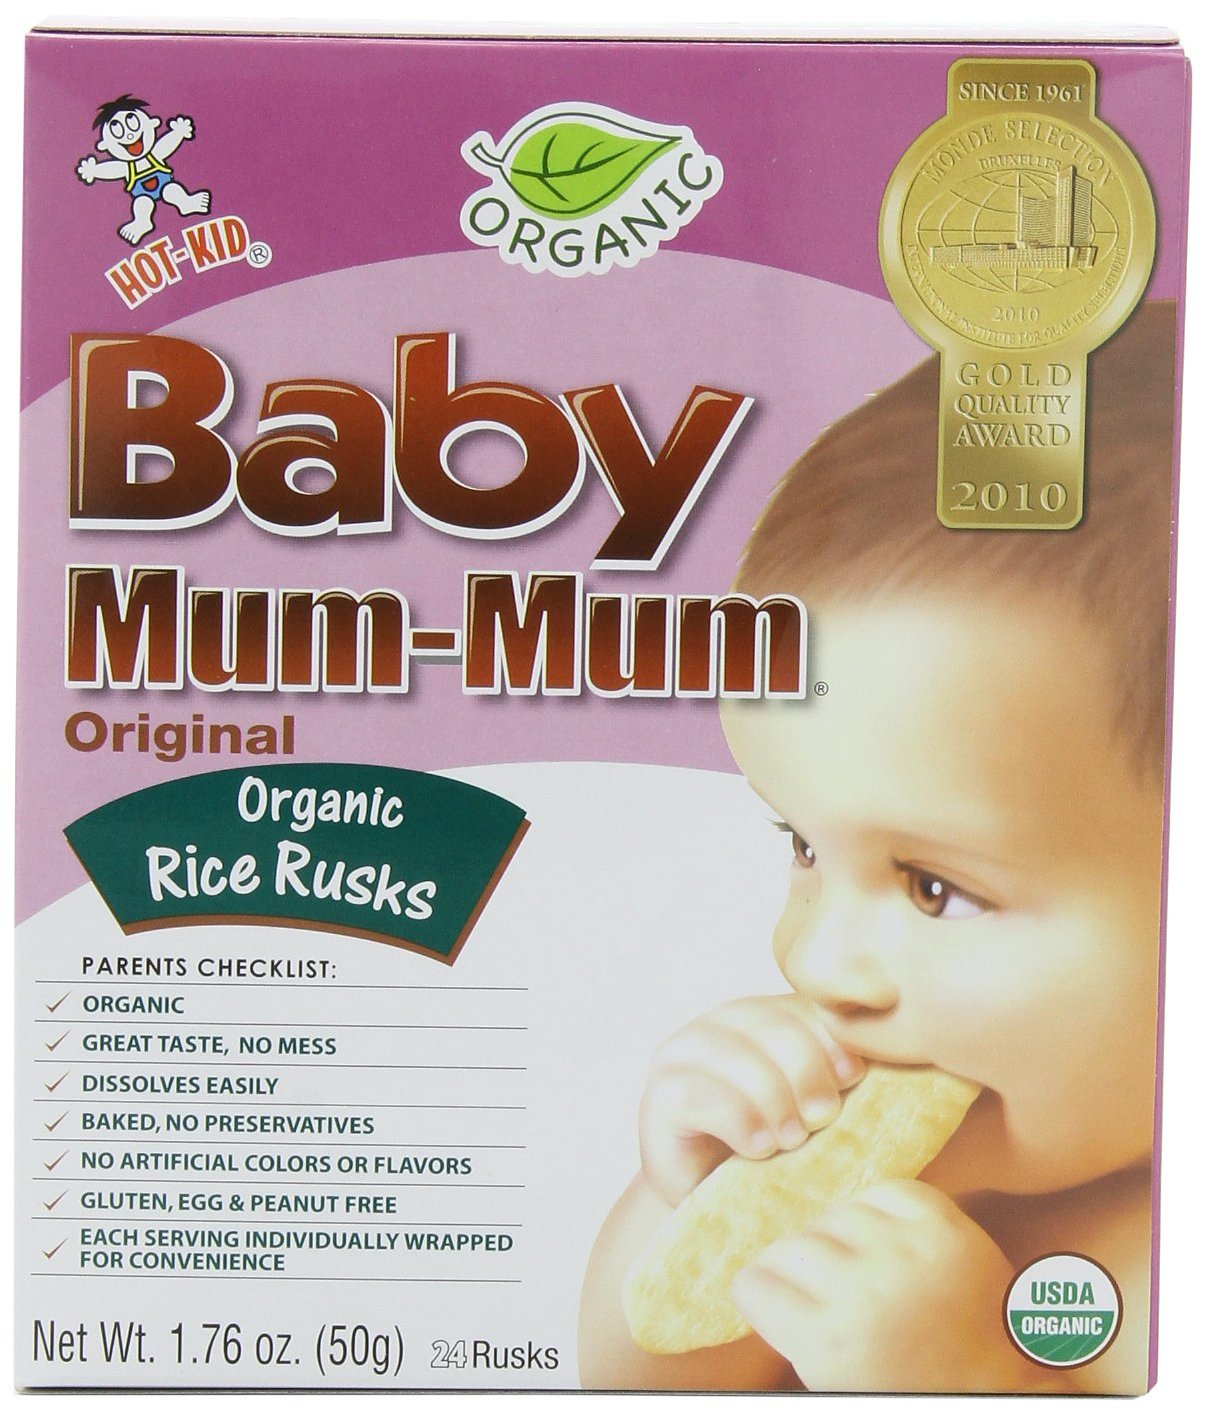 Baby Mum-Mum baby laughs at your expenditures